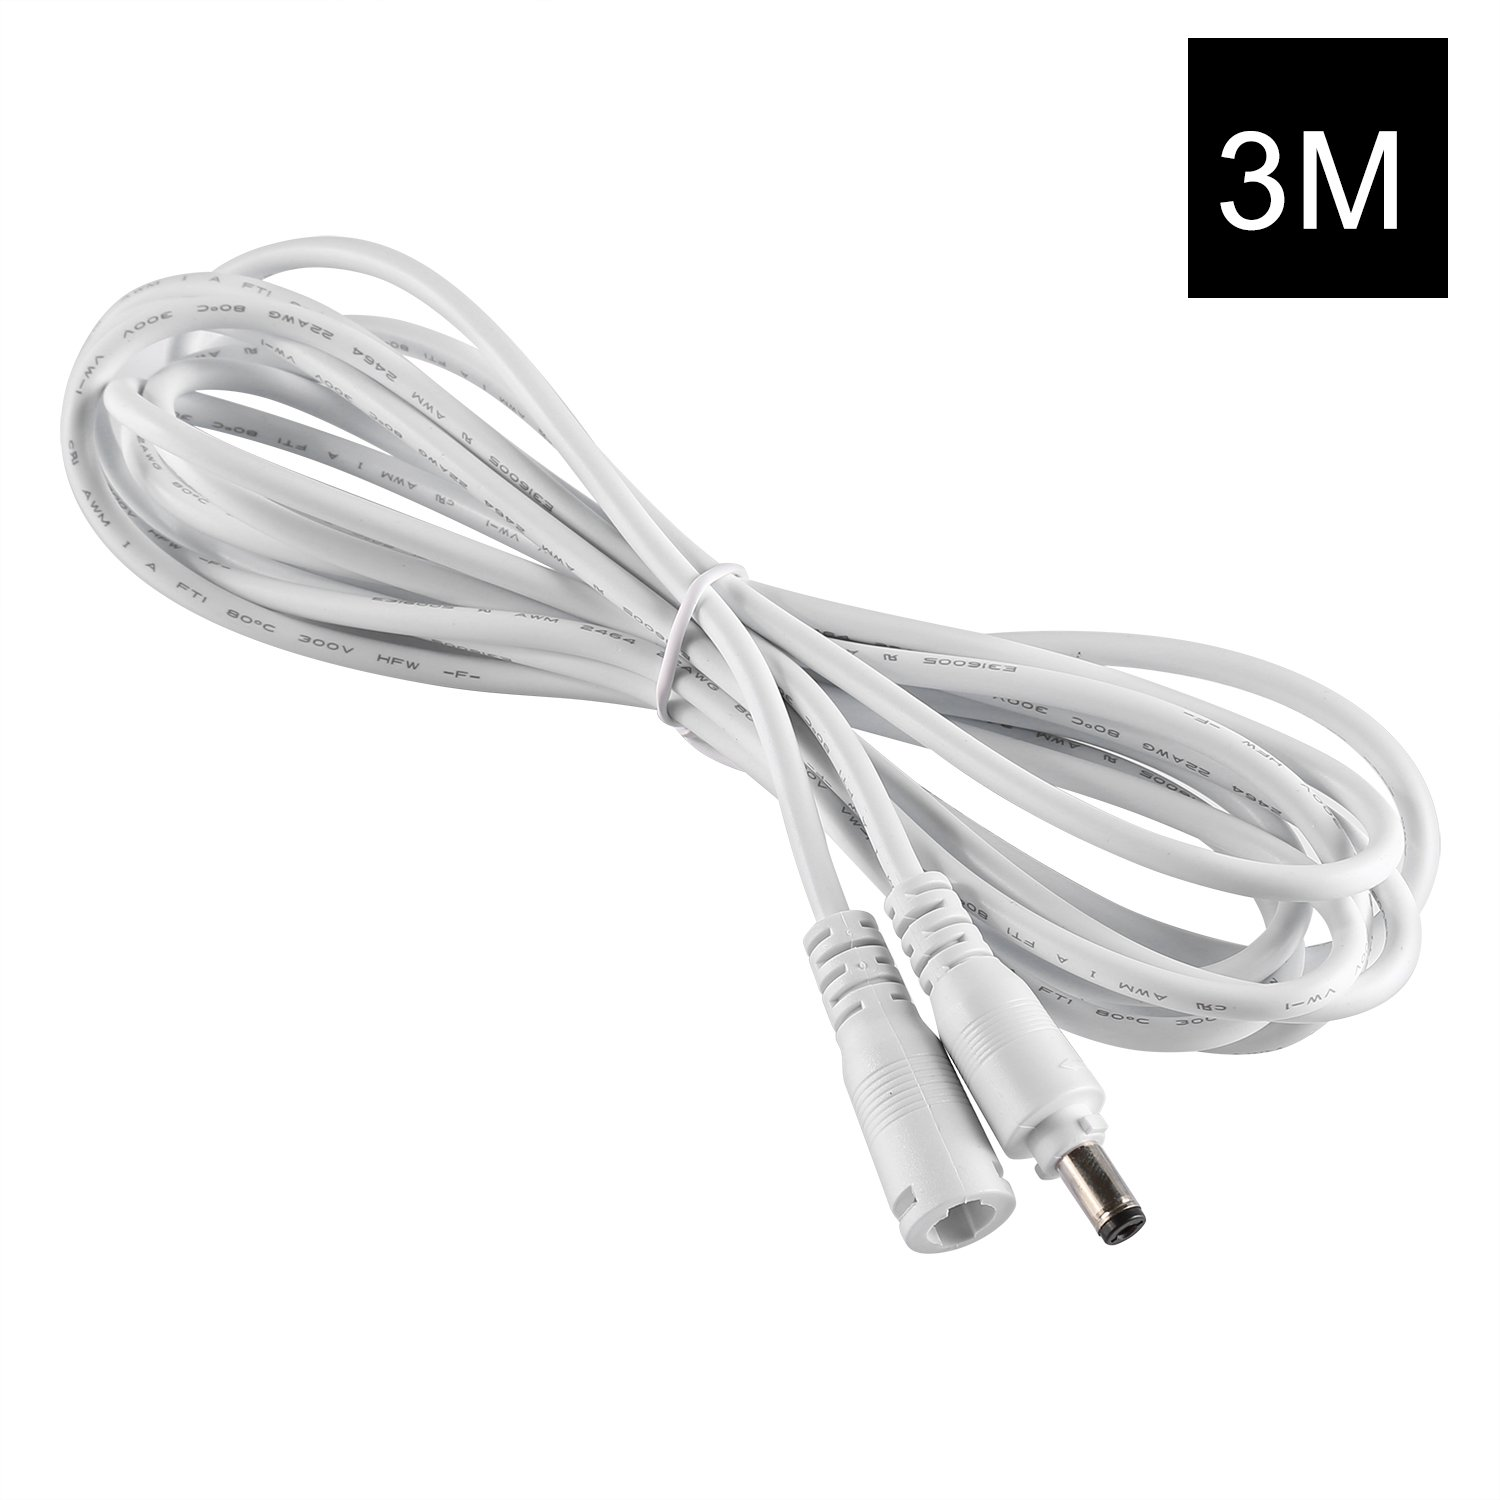 YOUKOYI 3M 2.1x5.5mm DC 12v Energieverlängerungs-Kabel: Amazon.de ...